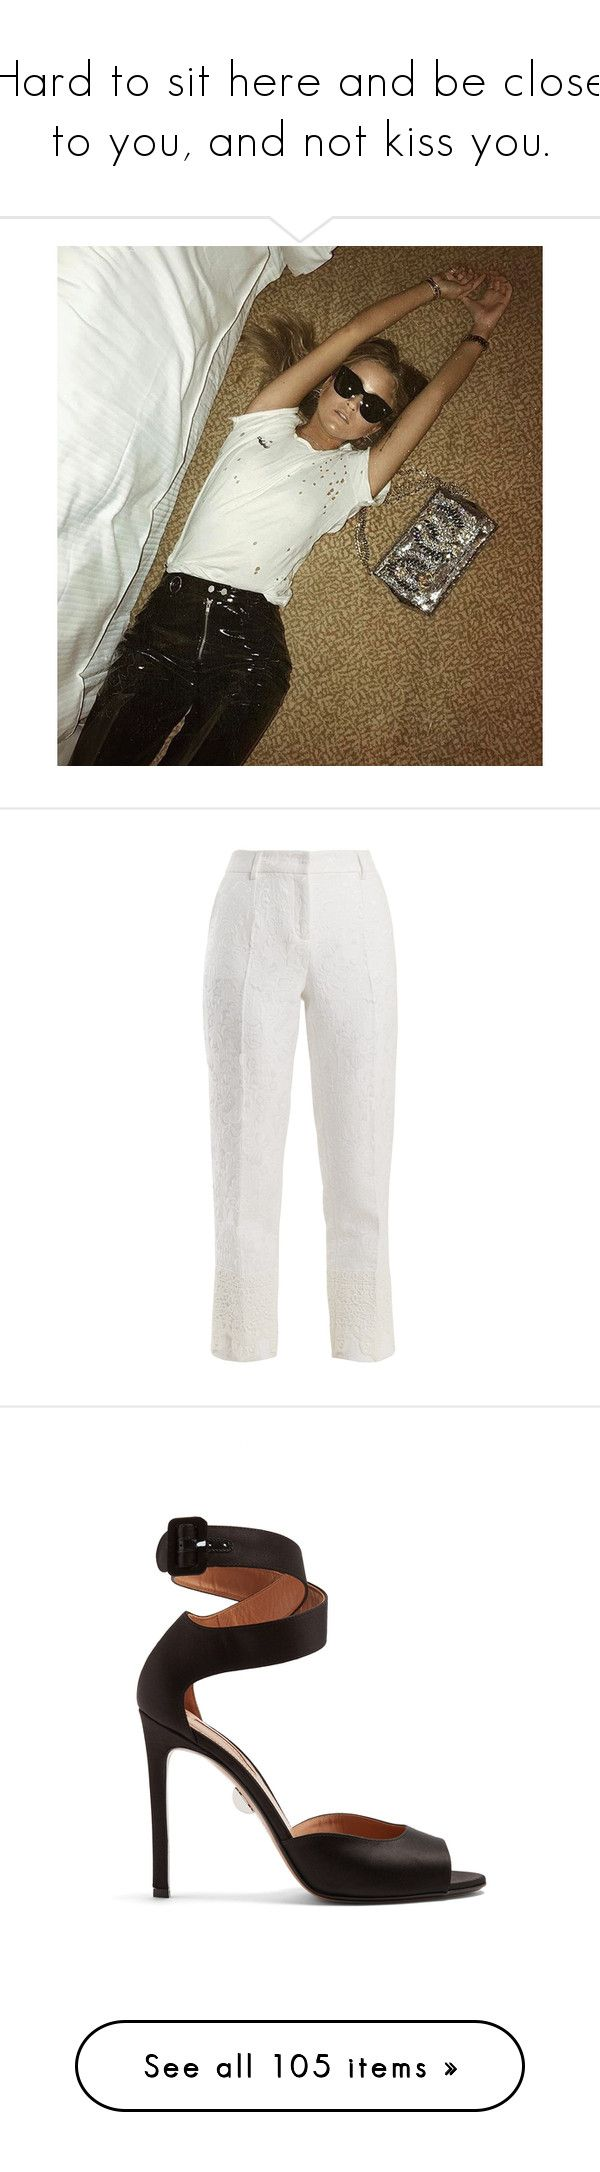 """""""Hard to sit here and be close to you, and not kiss you."""" by lucieednie ❤ liked on Polyvore featuring pants, bottoms, white, high-waisted trousers, white skinny pants, high waisted white pants, white pants, high rise pants, outerwear and coats"""